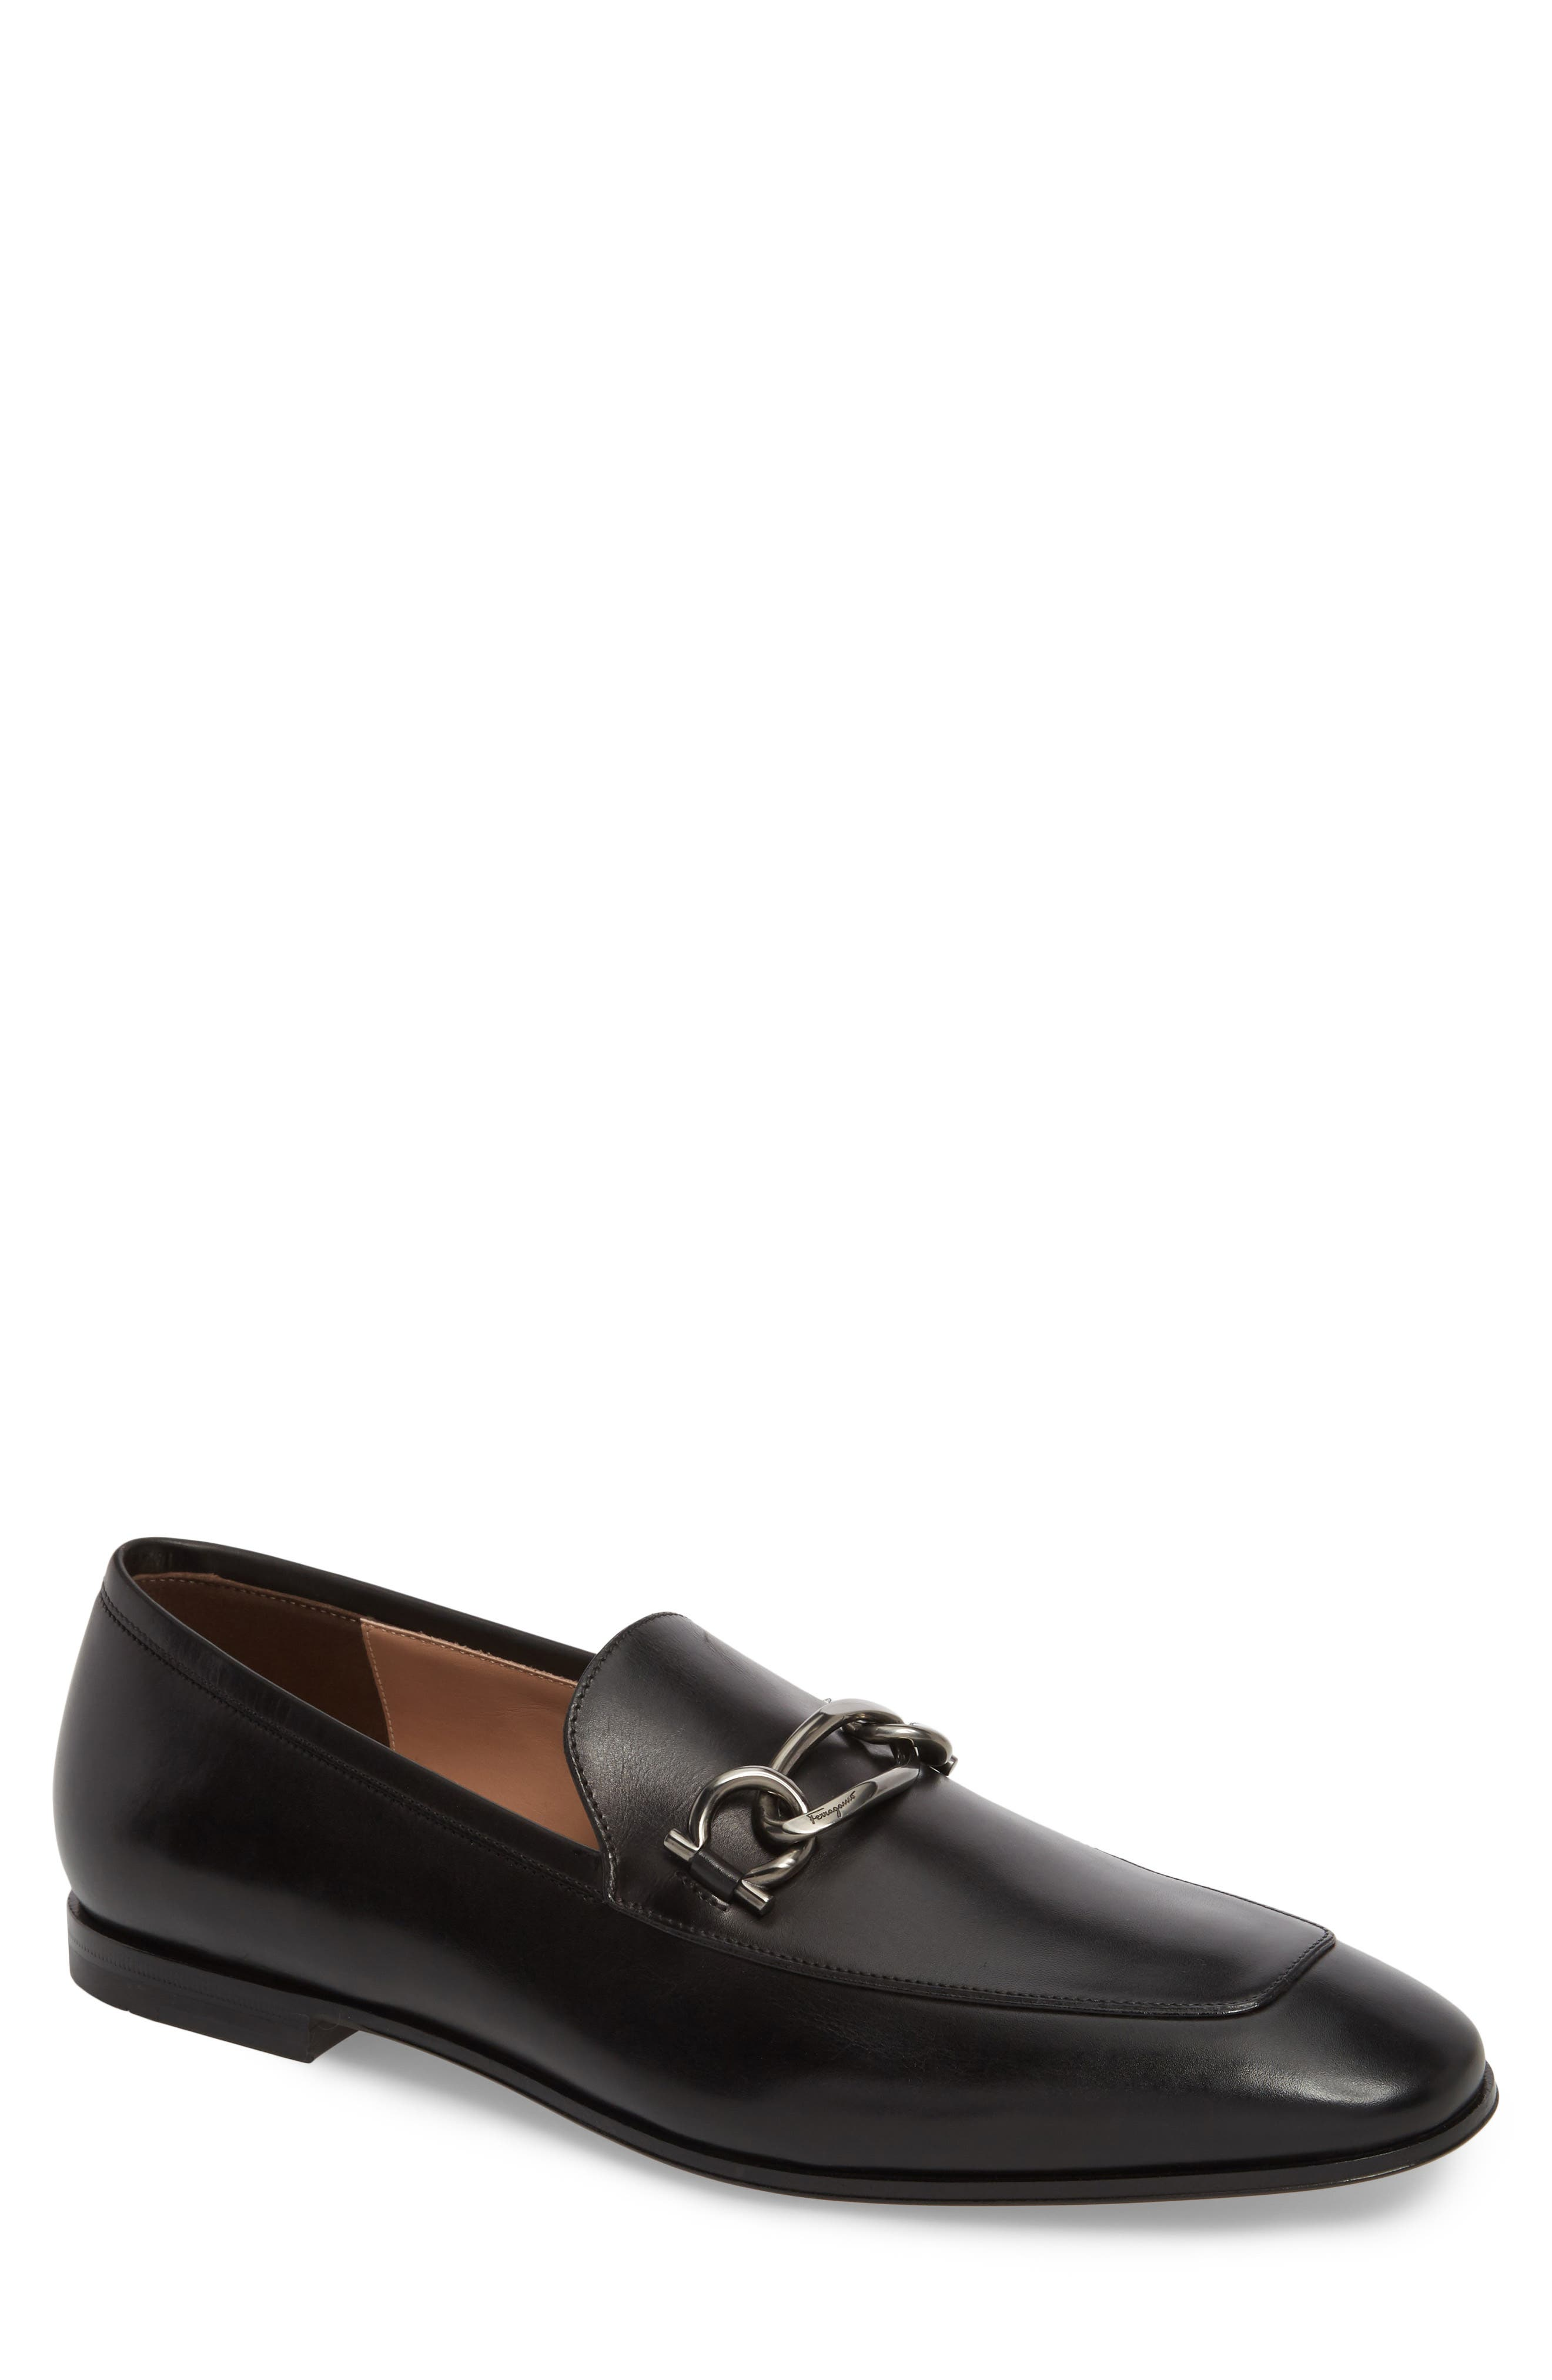 Boy Chain Bit Loafer,                             Main thumbnail 1, color,                             NERO LEATHER